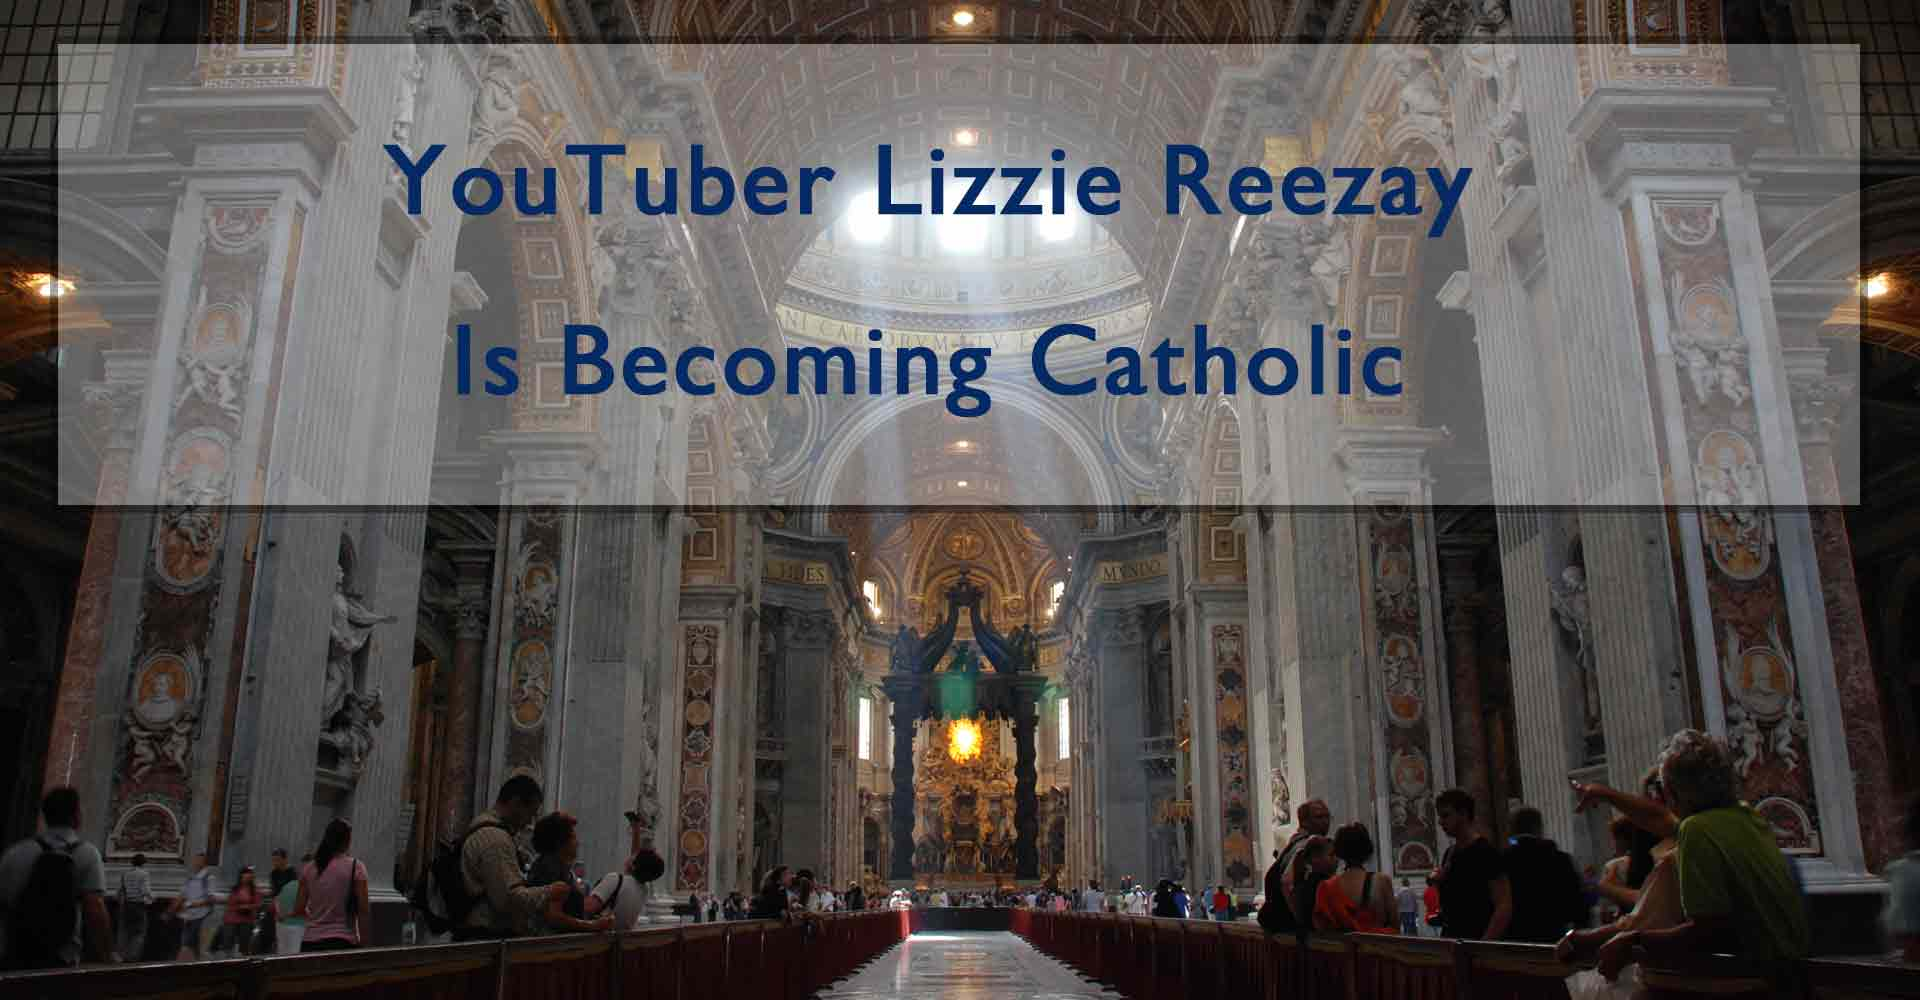 Lizzie Reezay is becoming Catholic